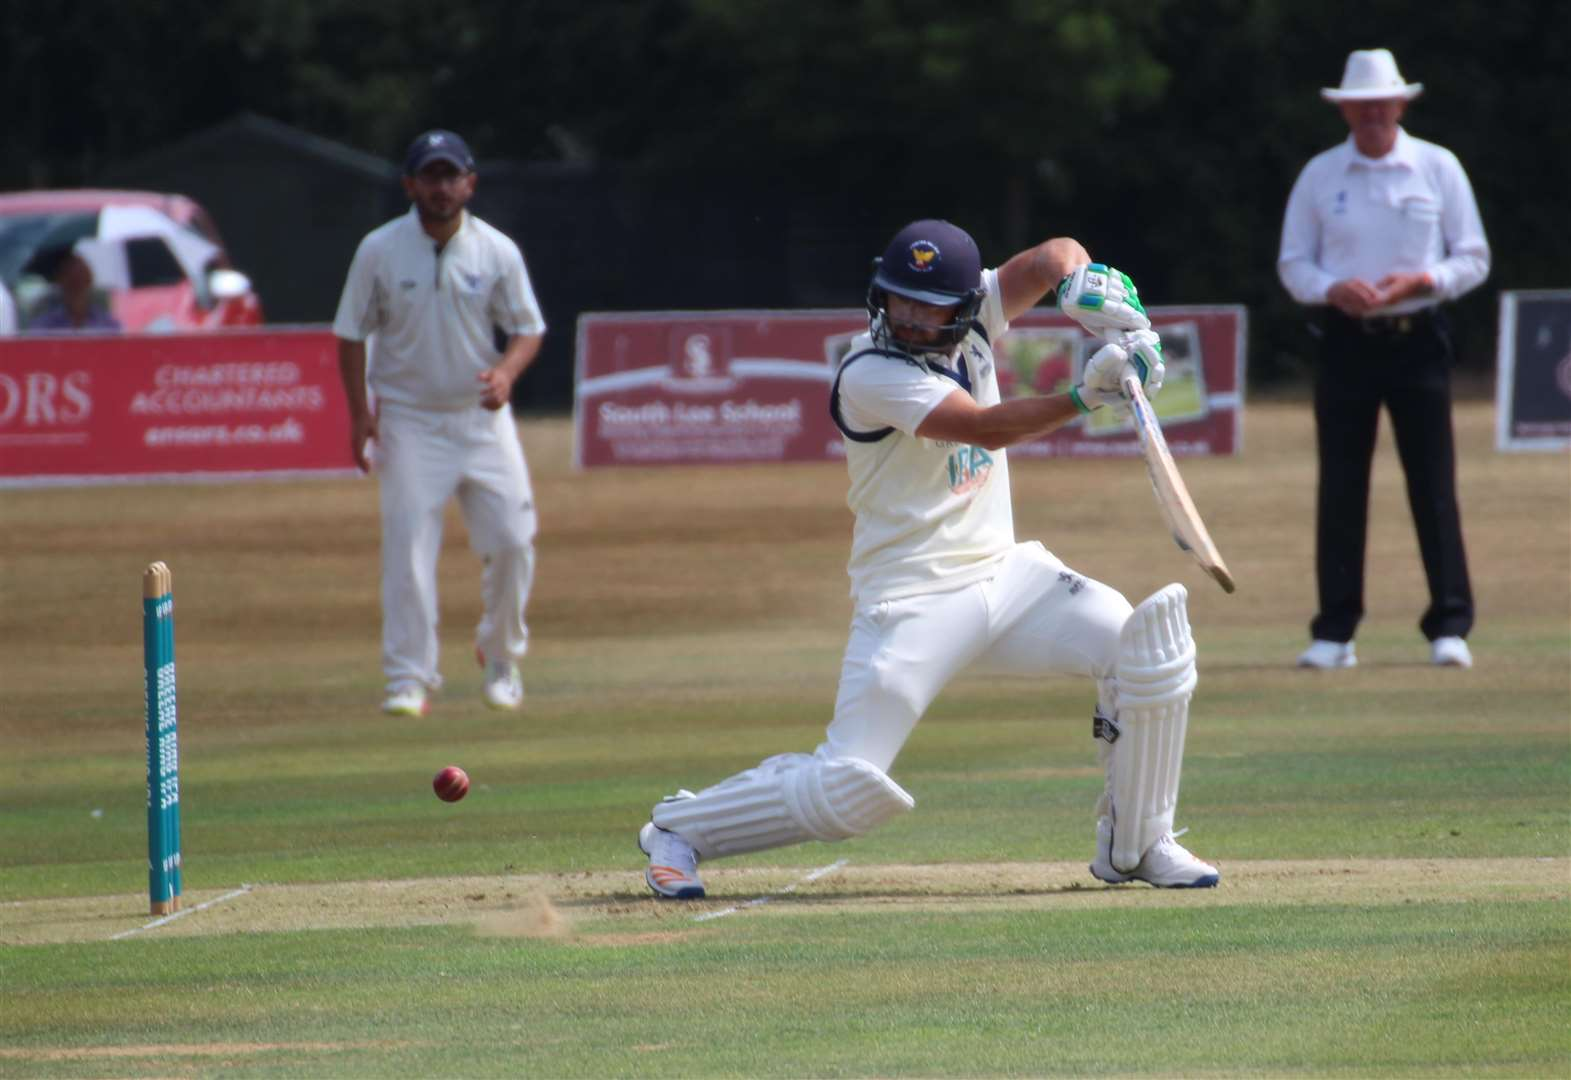 Suffolk's title hopes boosted by Mickleburgh return